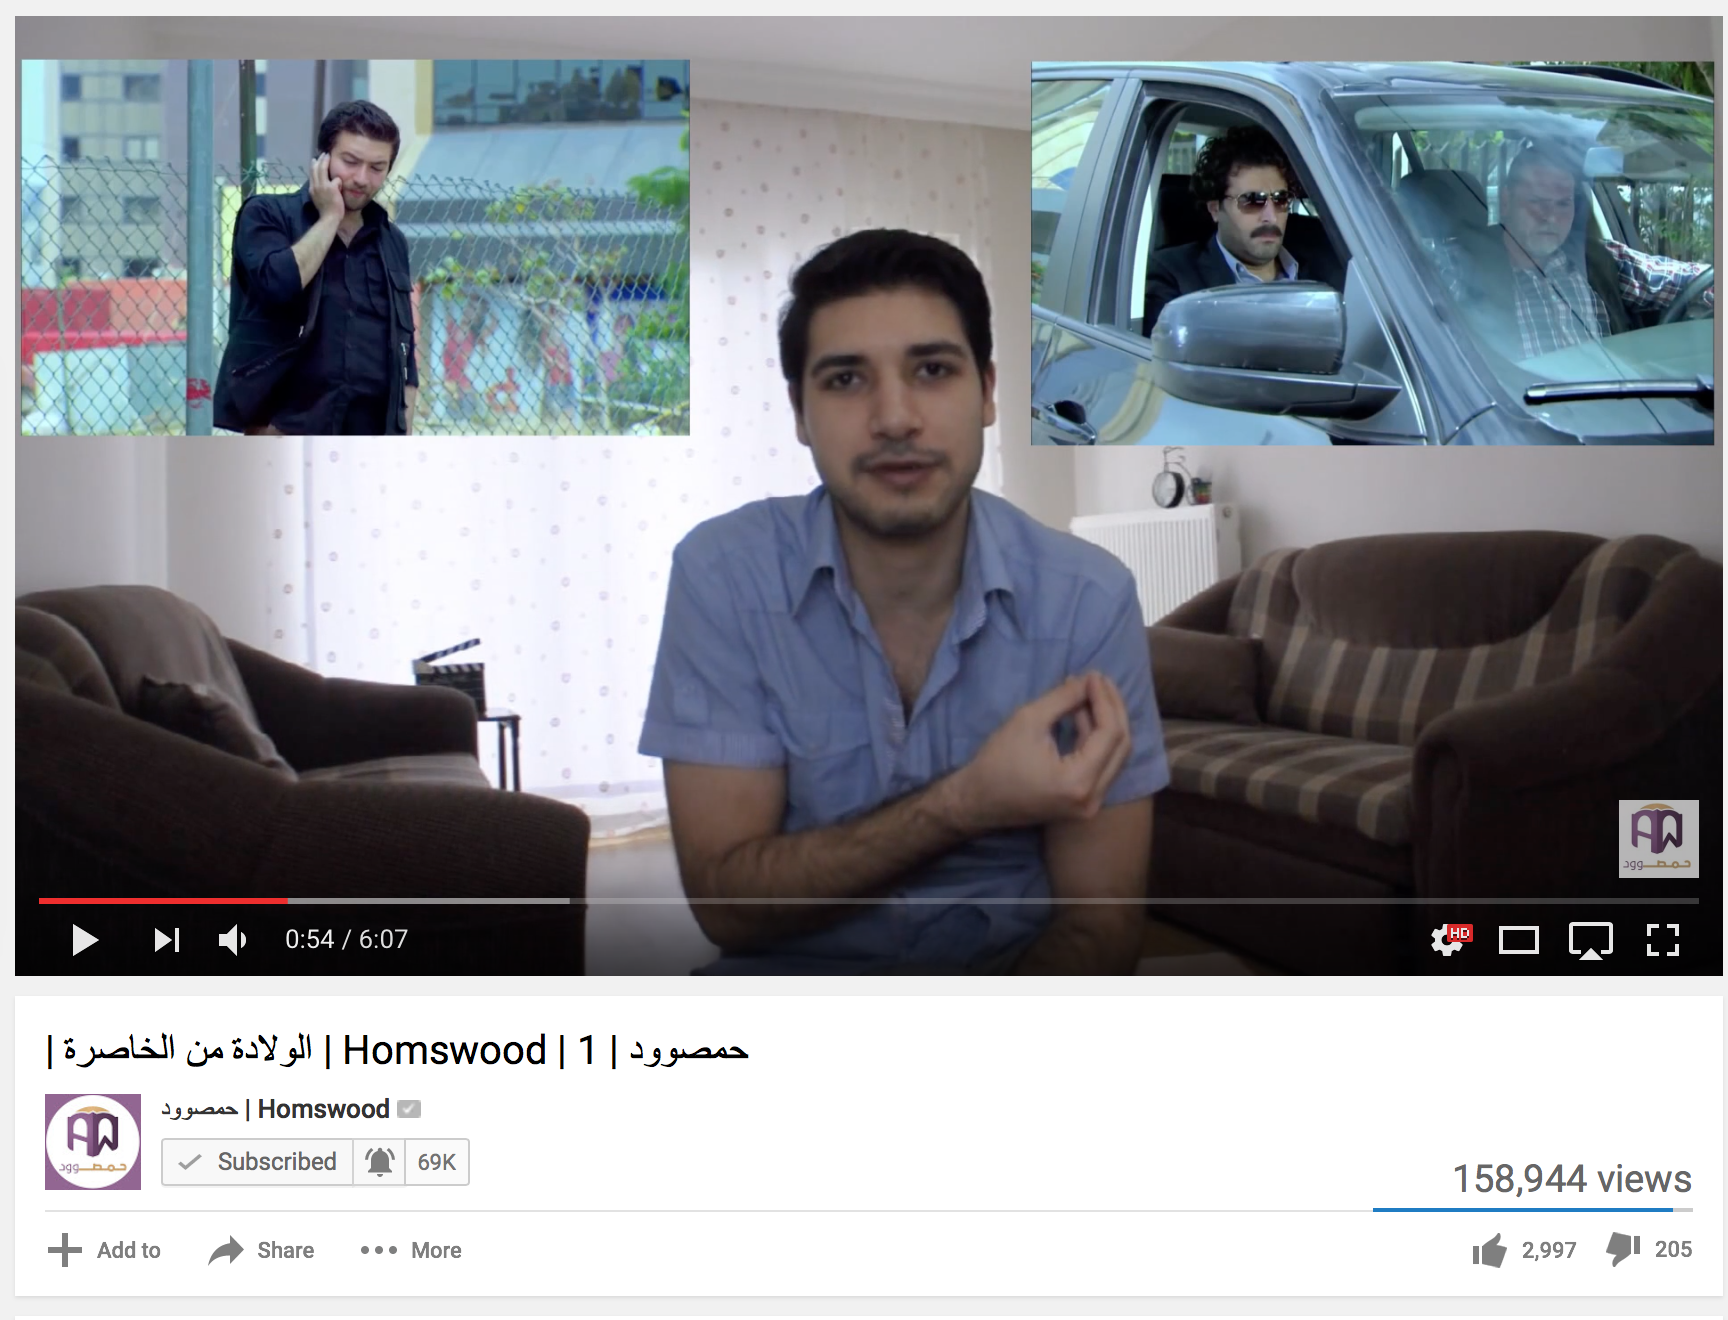 Homswood's earliest episodes were filmed out of his living room.